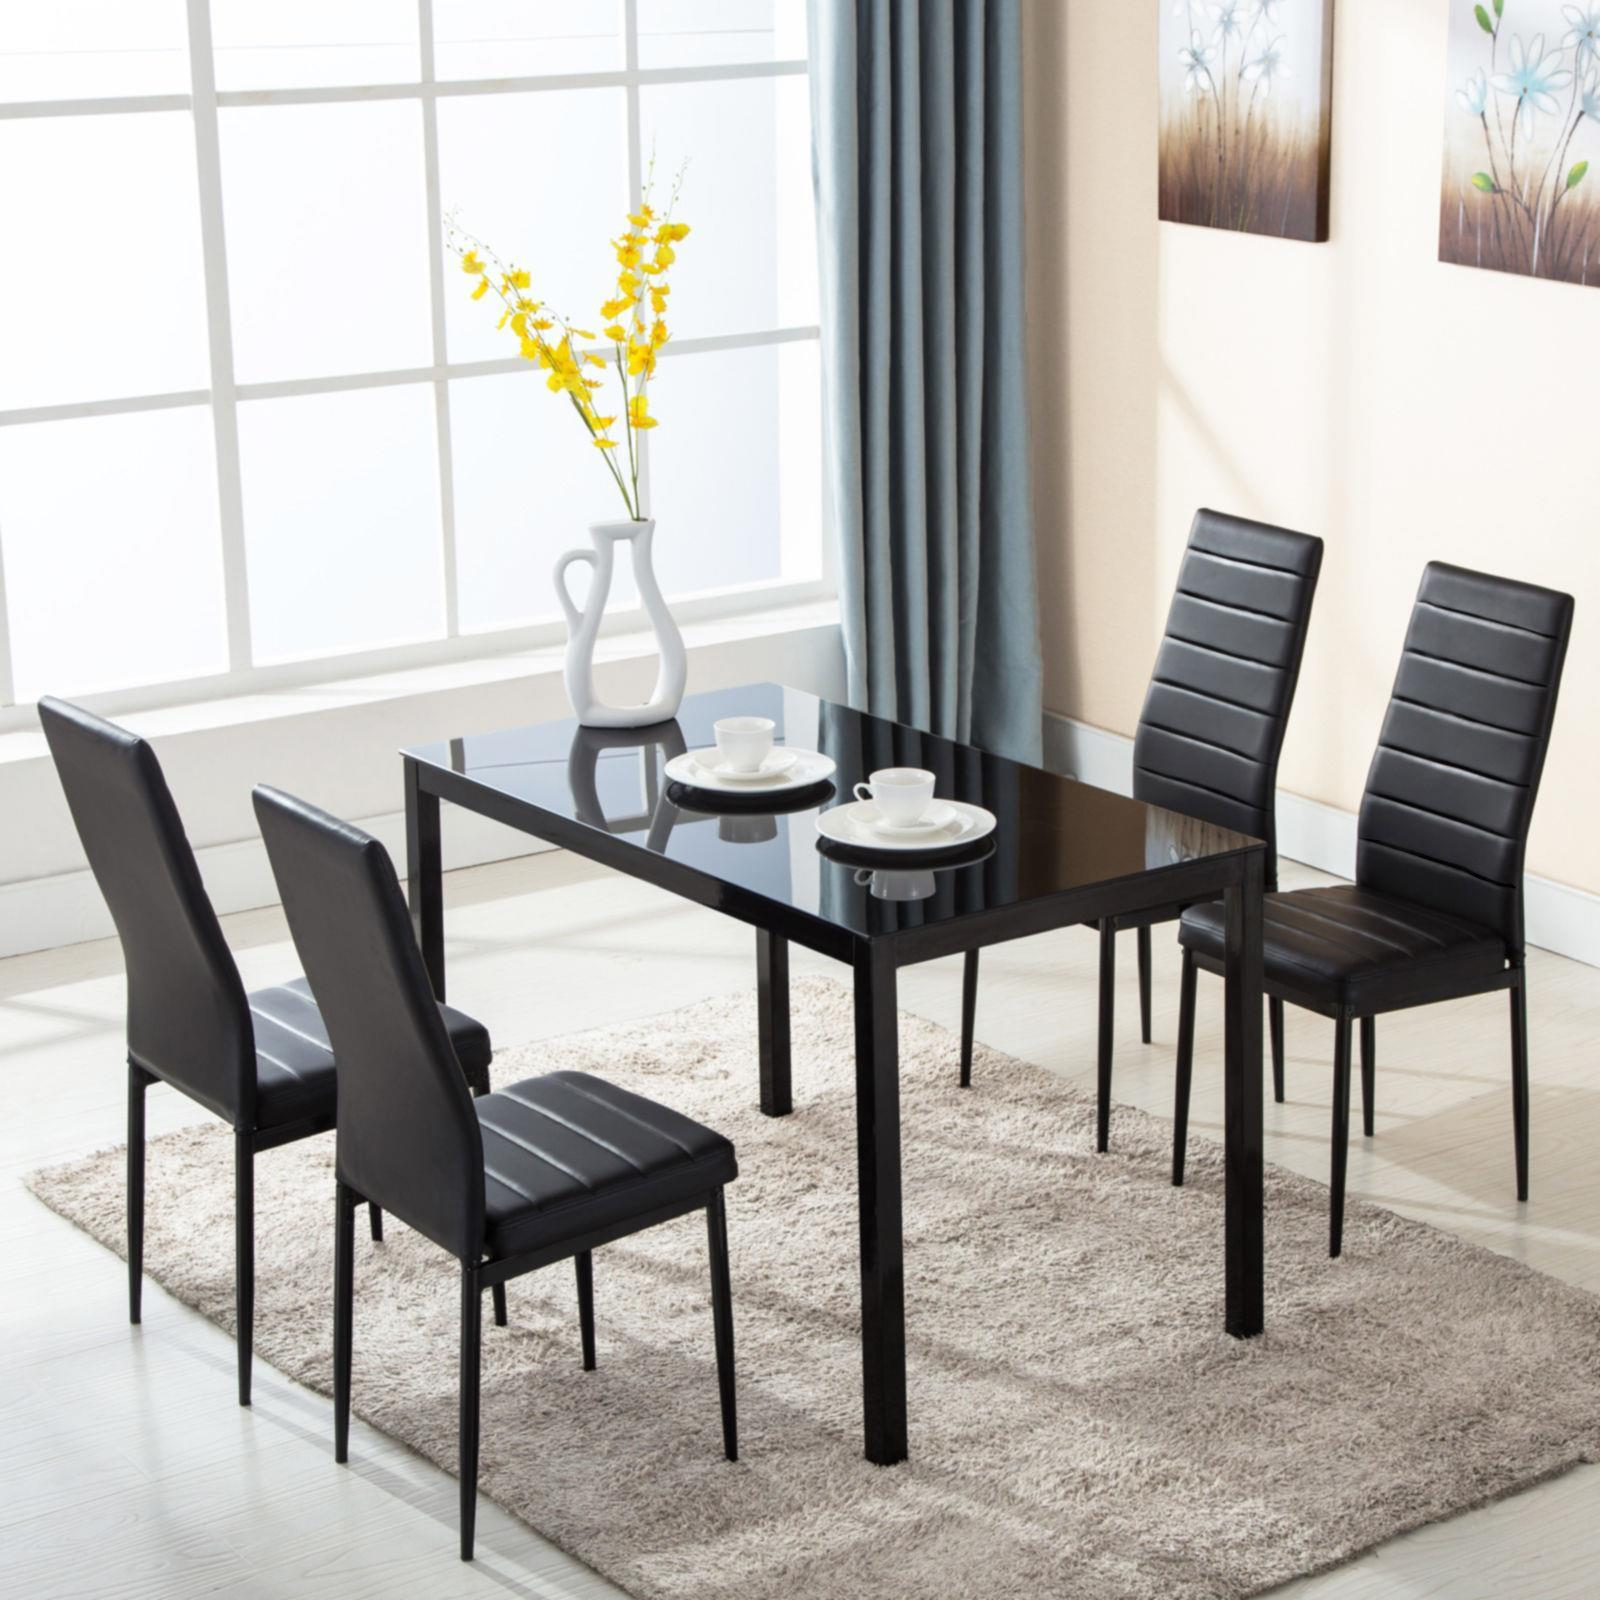 Superieur Ktaxon 5 Piece Dining Table Set,4 Chairs,Glass Table Breakfast Furniture